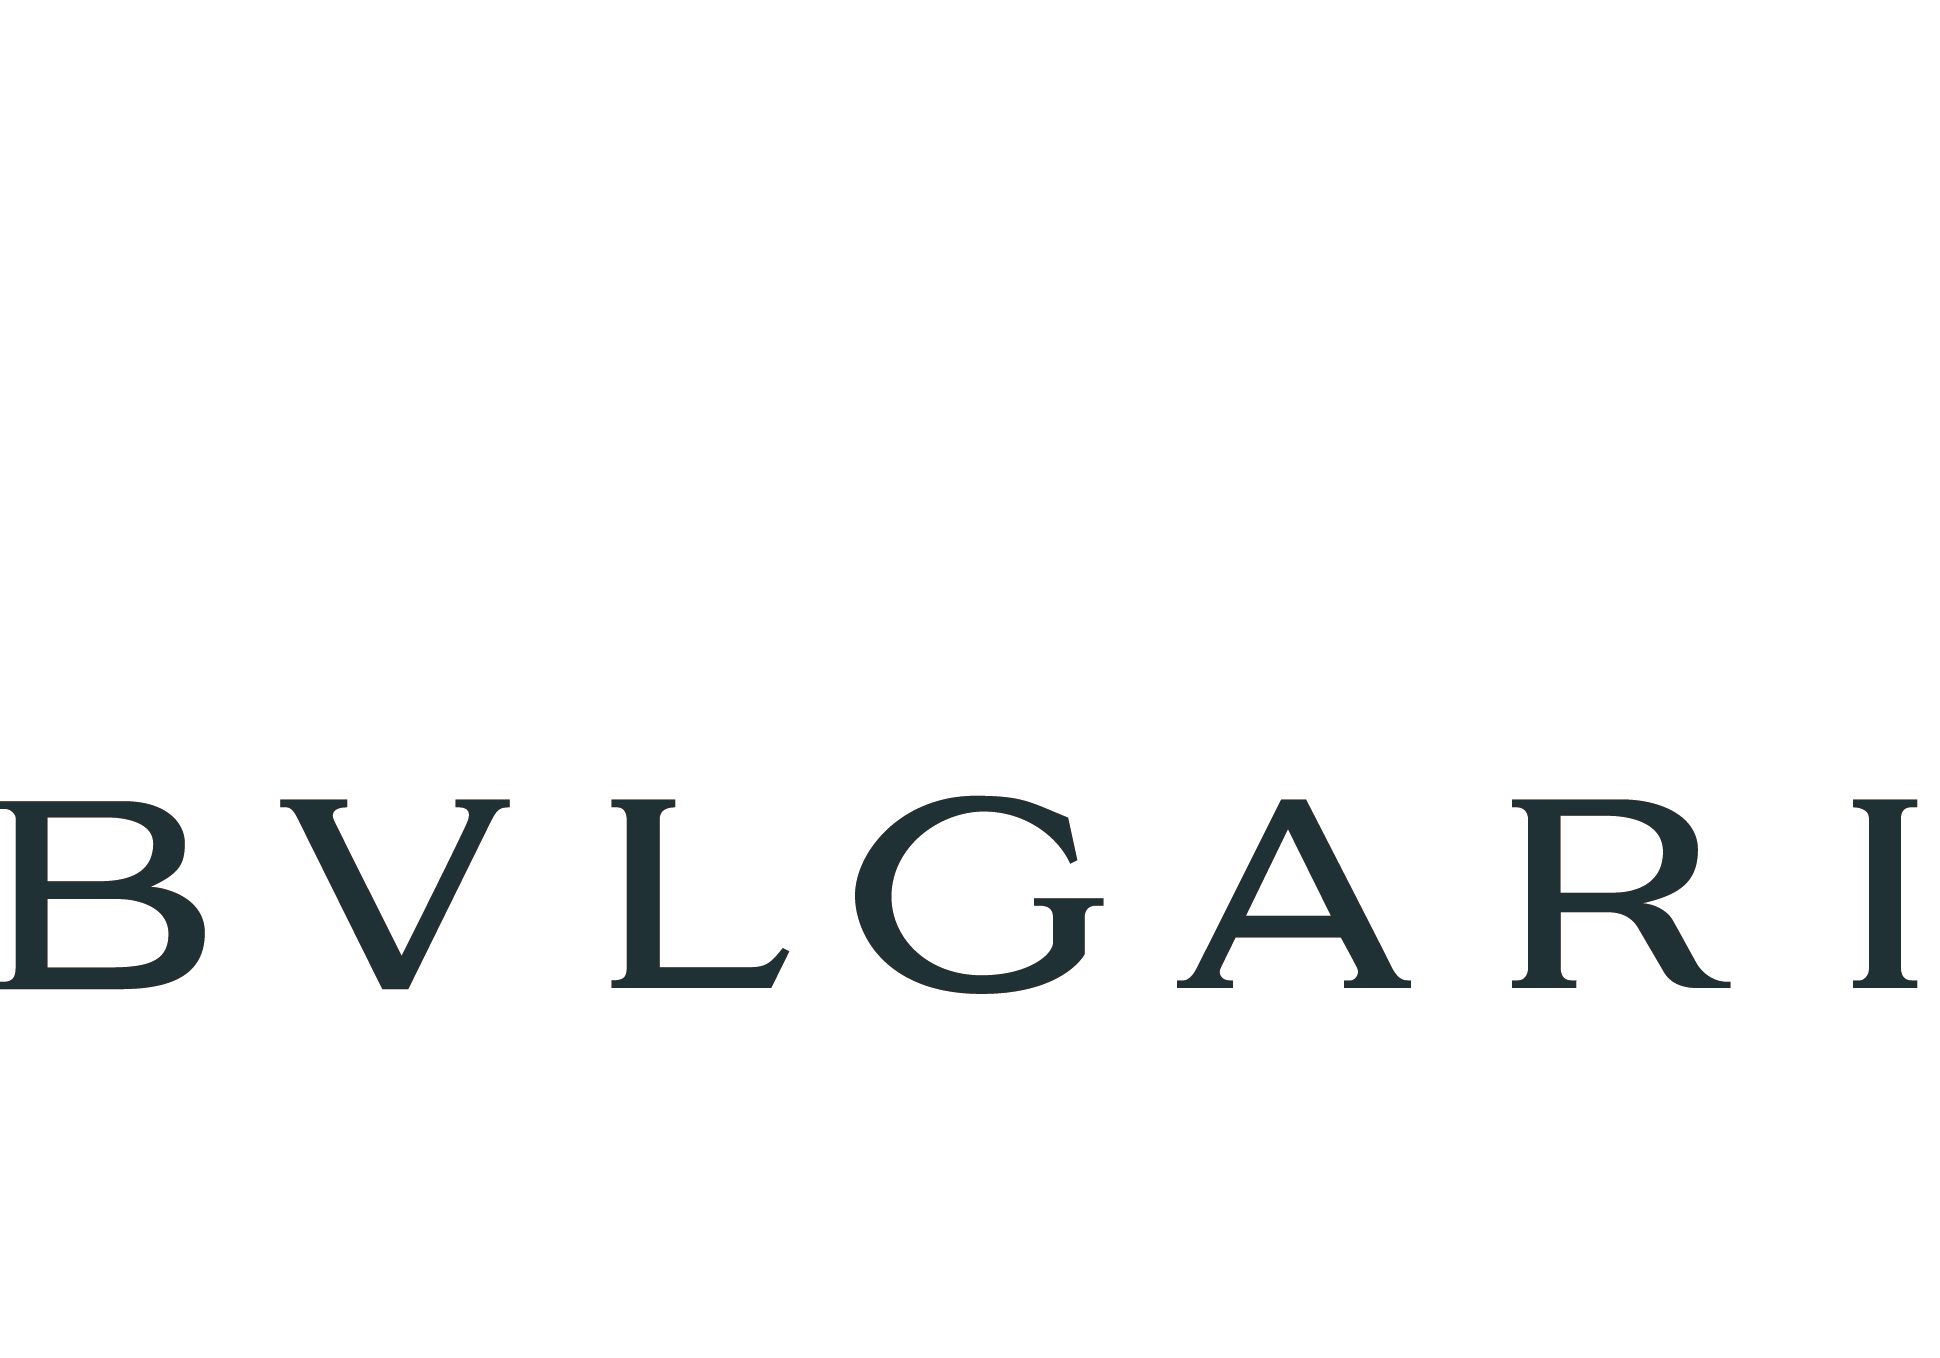 BVLGARI Restaurant and Shop Search.